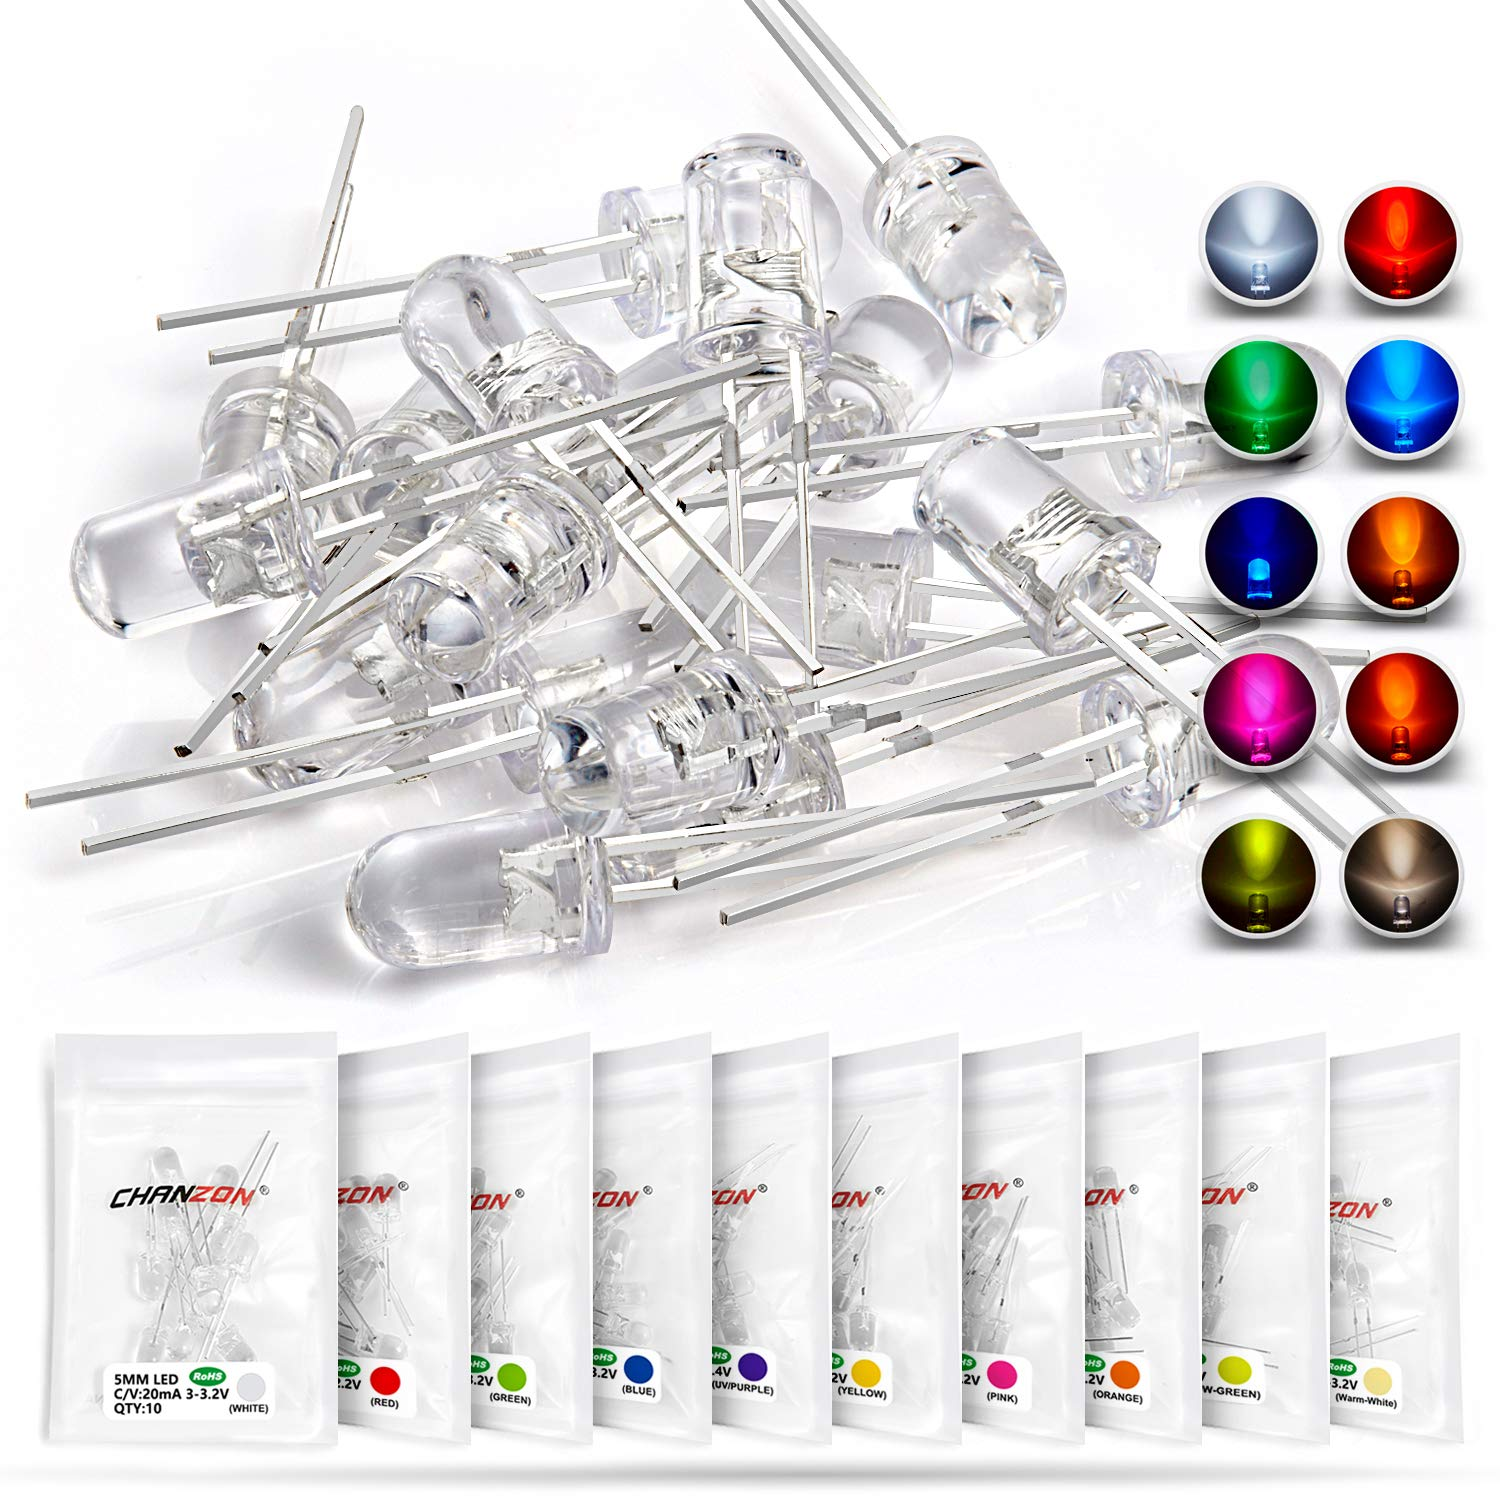 Chanzon 100 pcs(10 colors x 10 pcs) 5mm LED Diode Lights Arduino Assored Kit Pack (Clear Transparent DC 2V - 3V 20mA) Bright Lighting Bulb Lamps Electronics Components 5 mm Light Emitting Diodes Parts